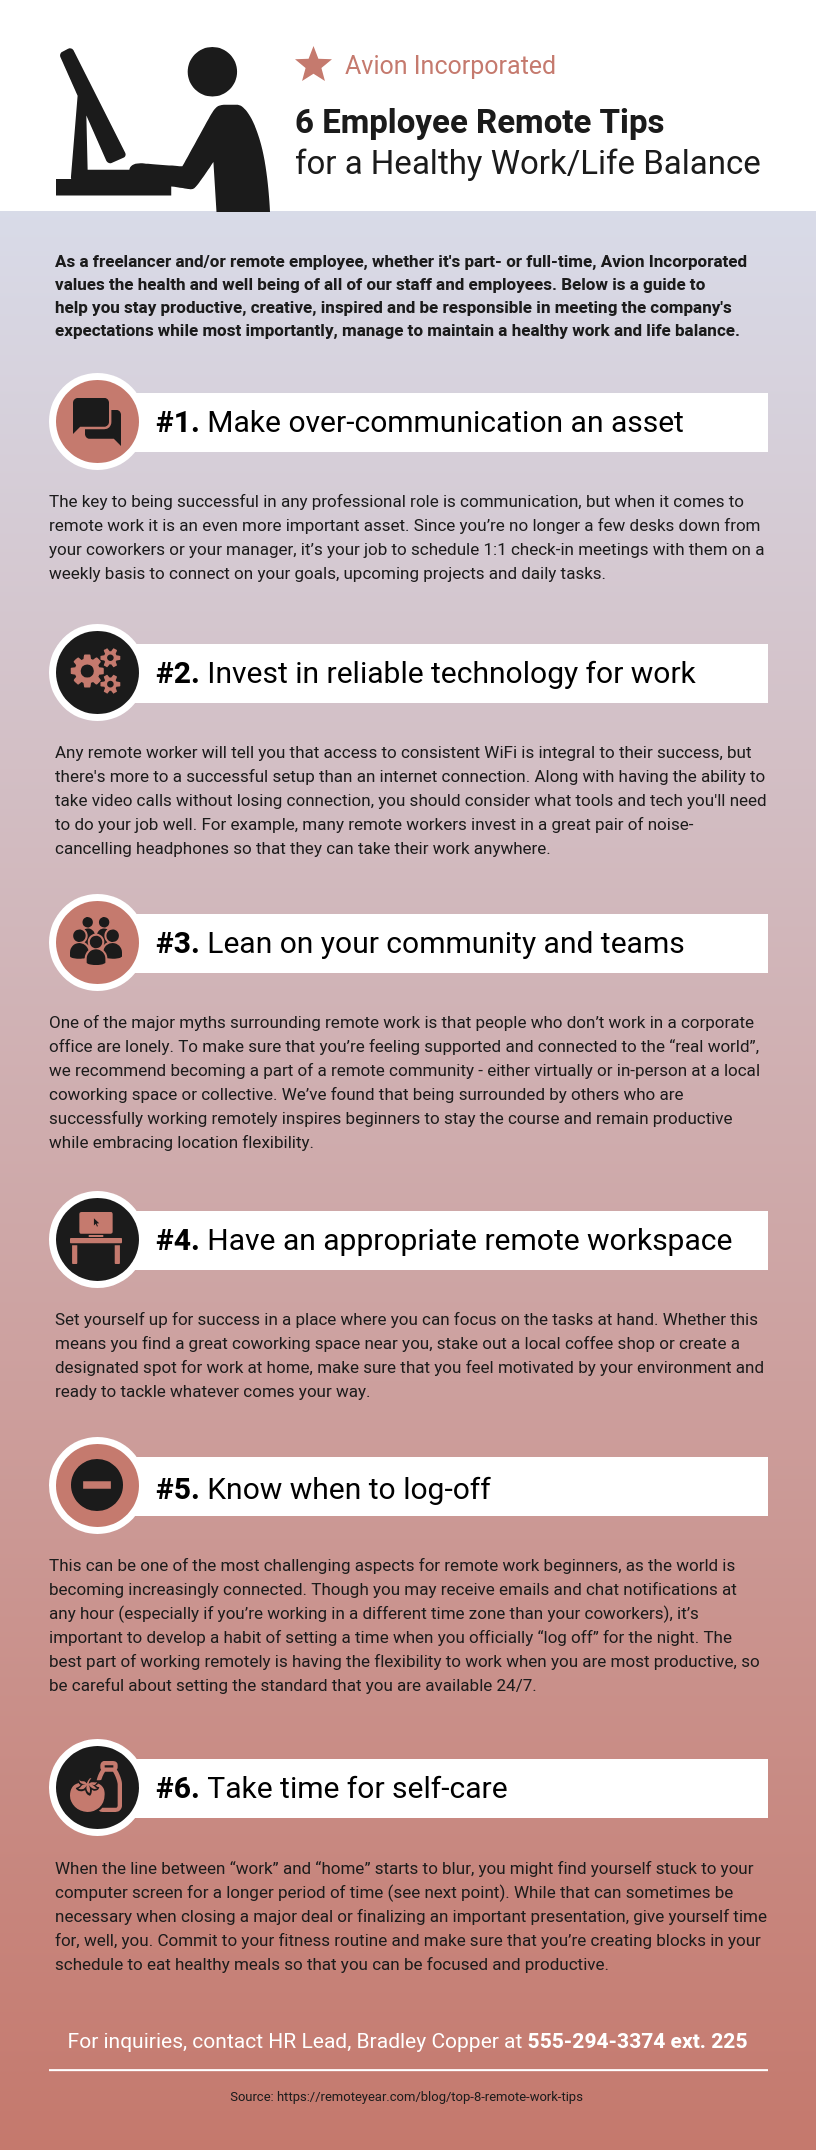 6 Employee Remote Tips List Infographic Template